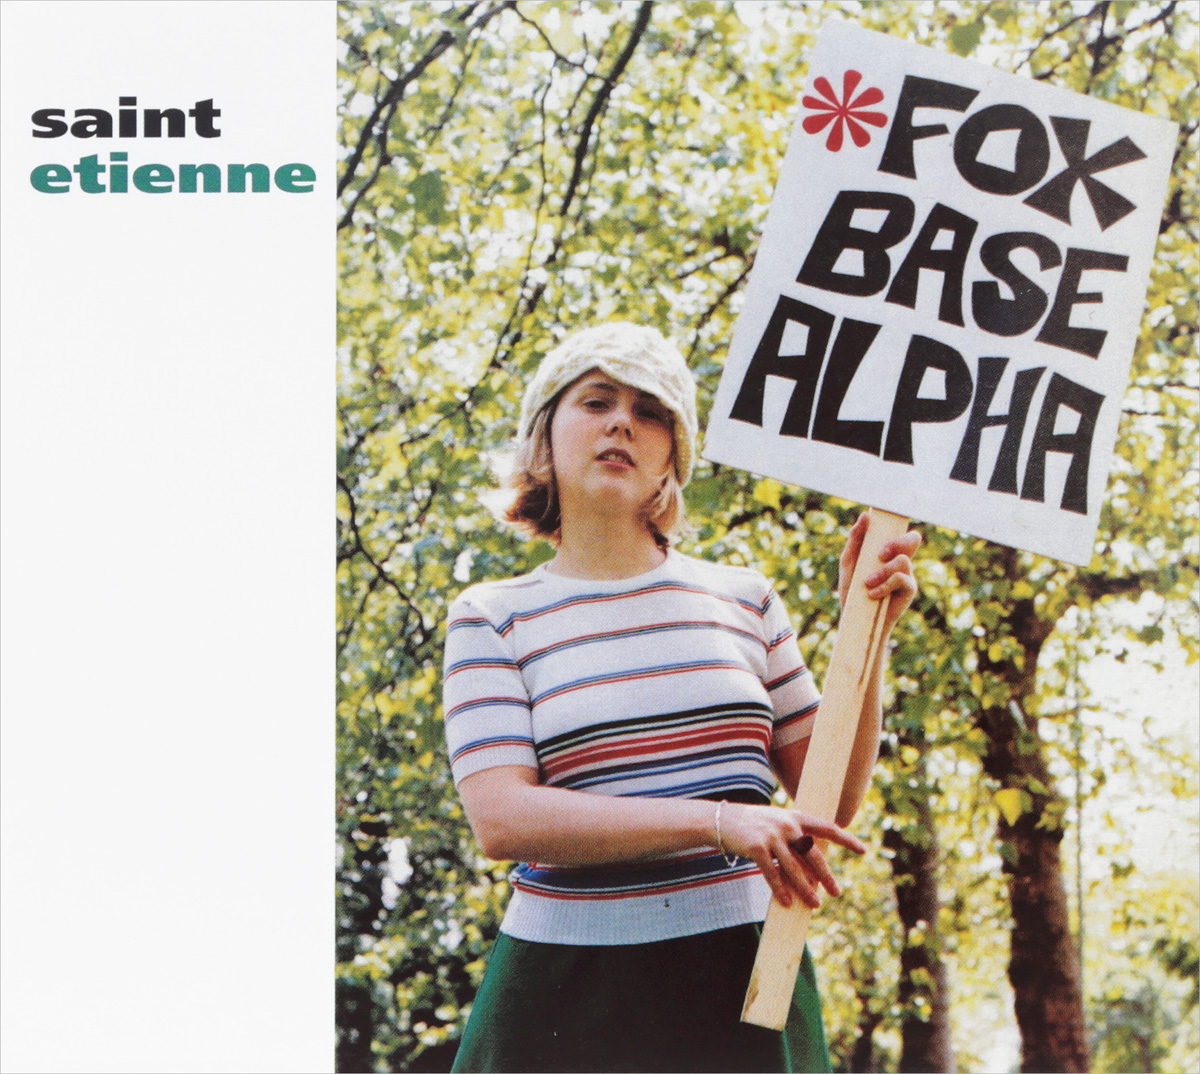 Антуан де Сент-Этьен Saint Etienne. Foxbase ALPha. 25Th Anniversary Edition (2 CD) batman arkham asylum 25th anniversary deluxe edition